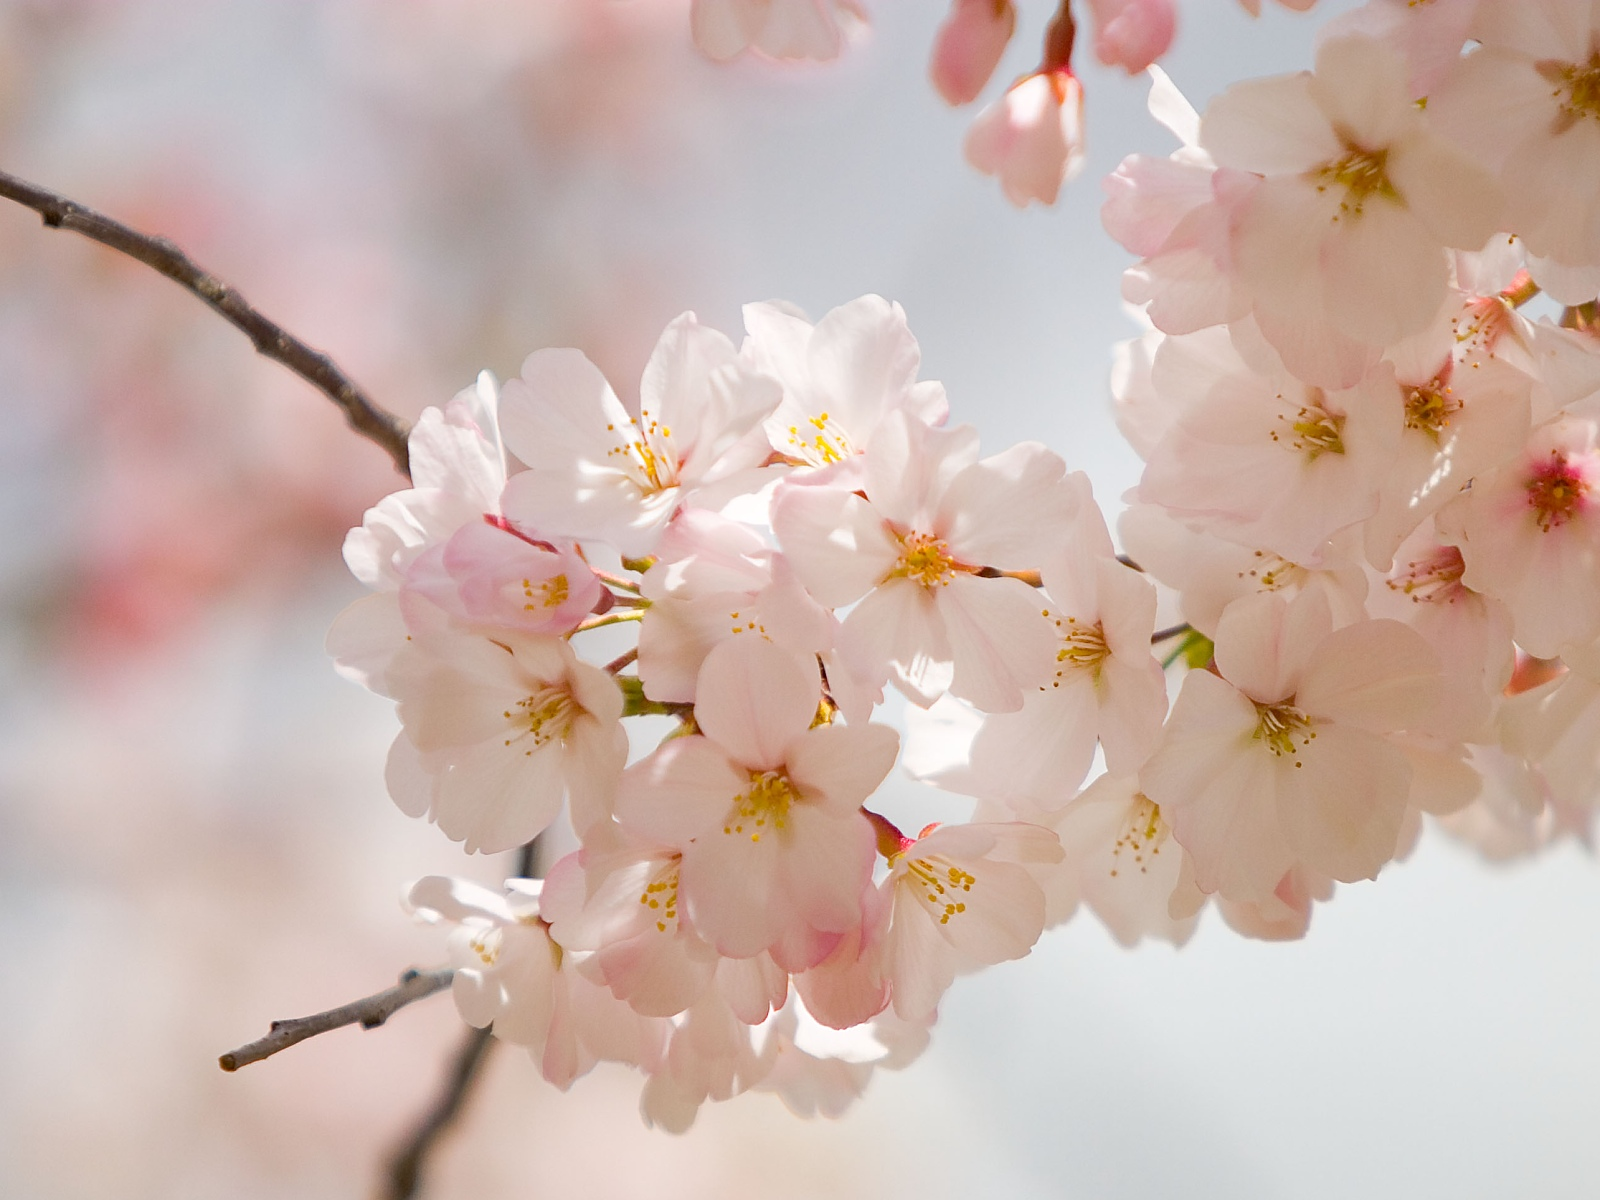 Amazing Spring Flowers Wallpapers 521 Entertainment World 1600x1200